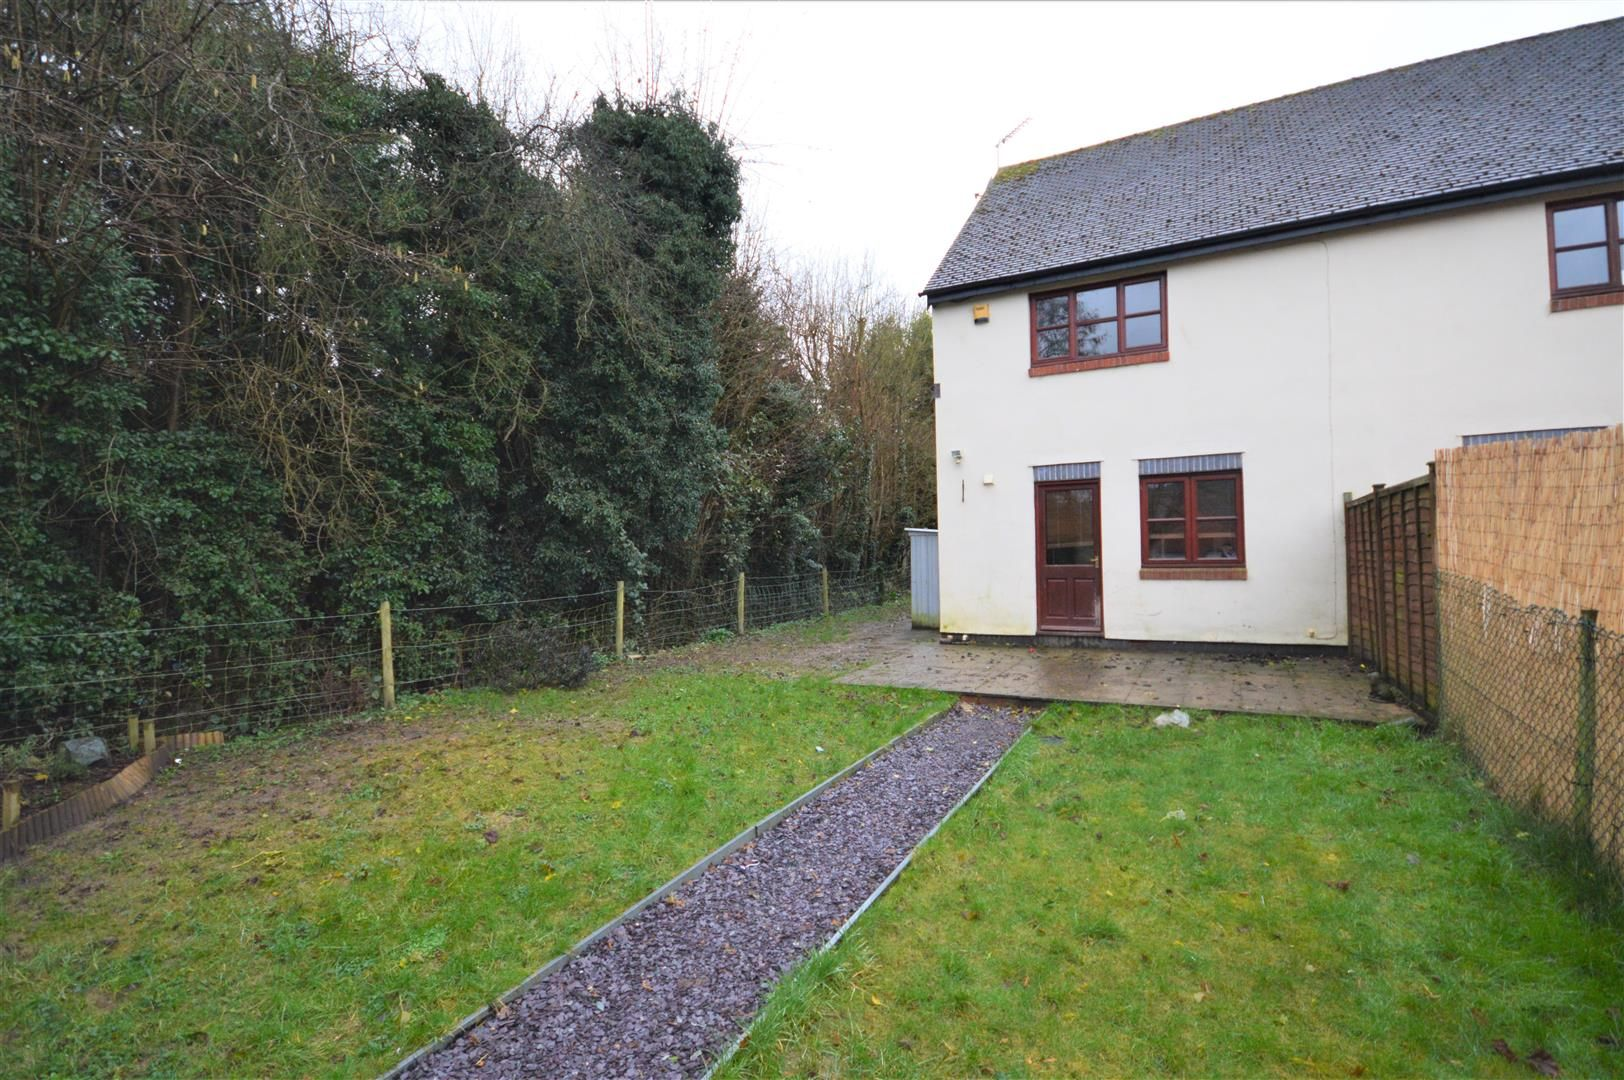 2 bed end-of-terrace to rent in Wigmore  - Property Image 4